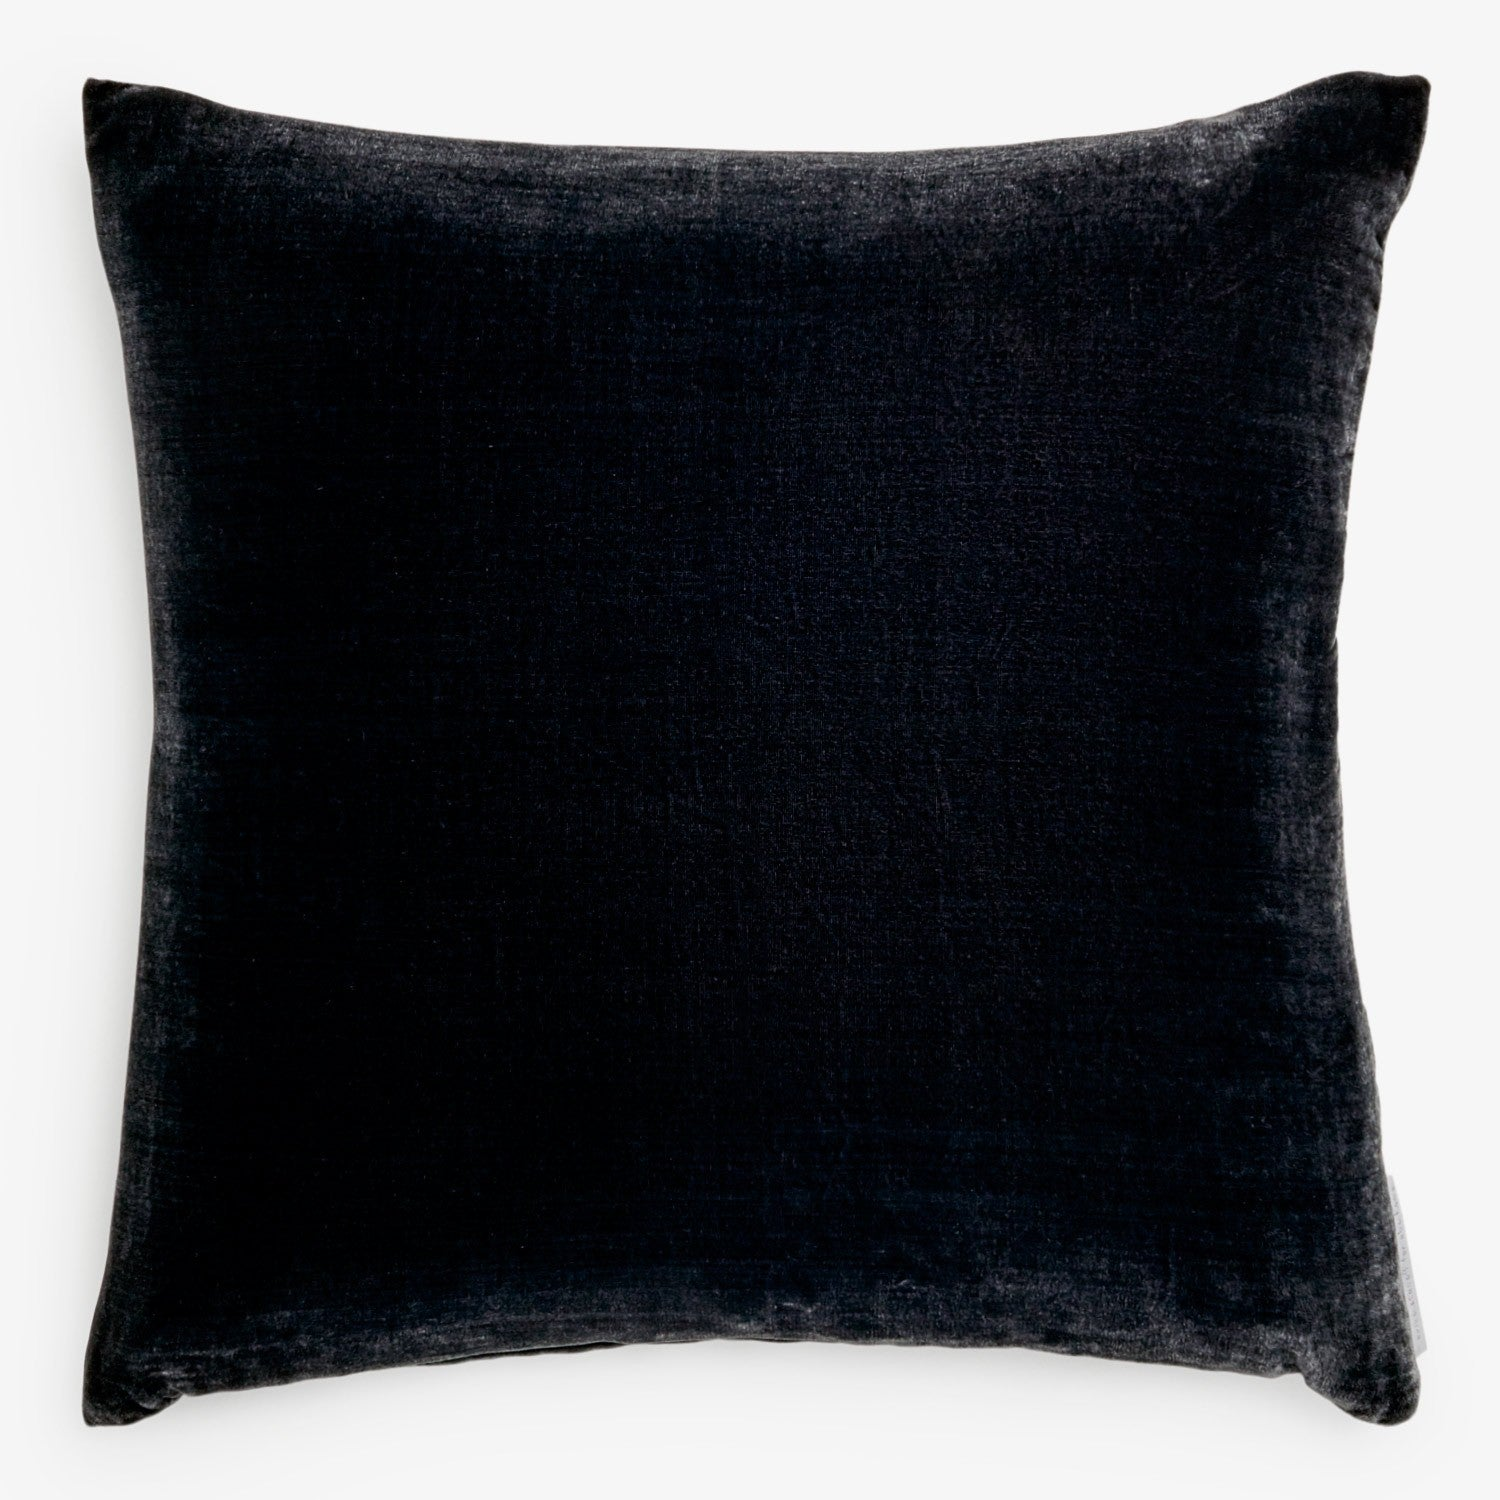 Solid Silk Velvet in Charcoal